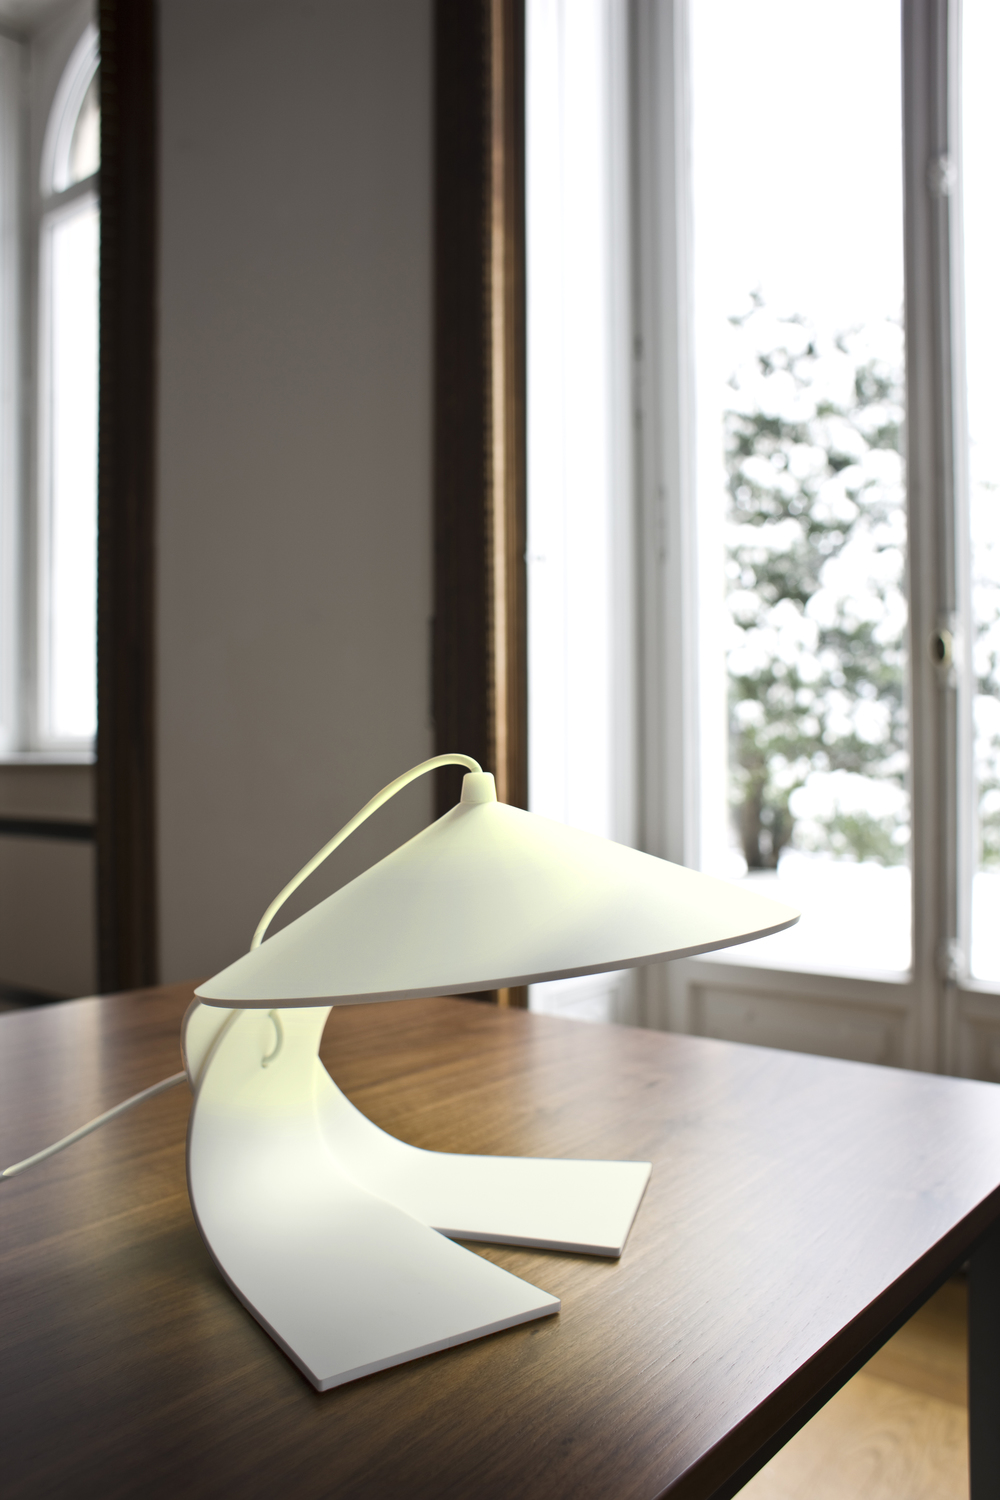 Prandina Hanoi table lamp